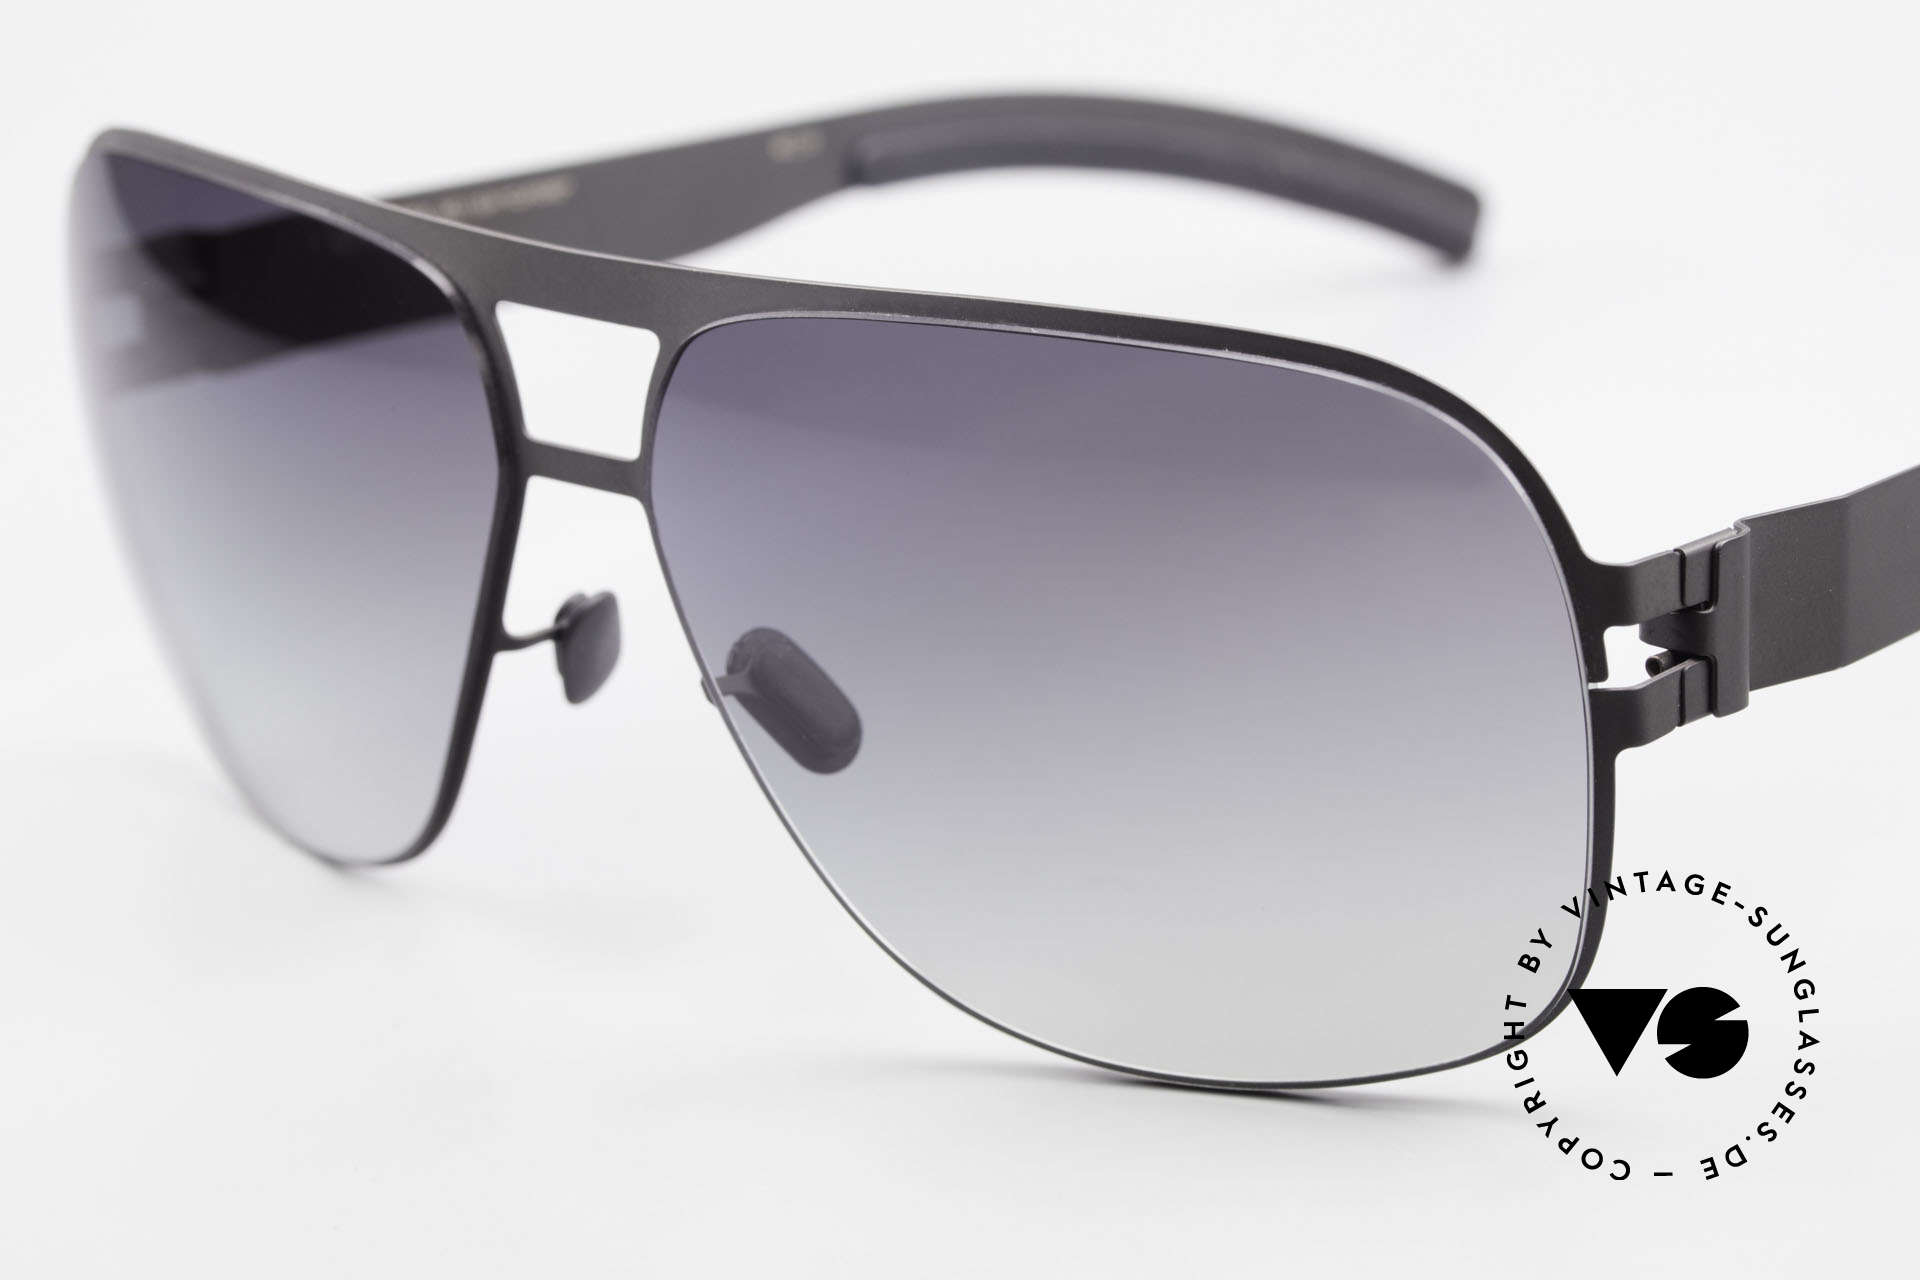 Mykita Clifford 2000's Vintage Designer Shades, innovative and flexible metal frame = One size fits all!, Made for Men